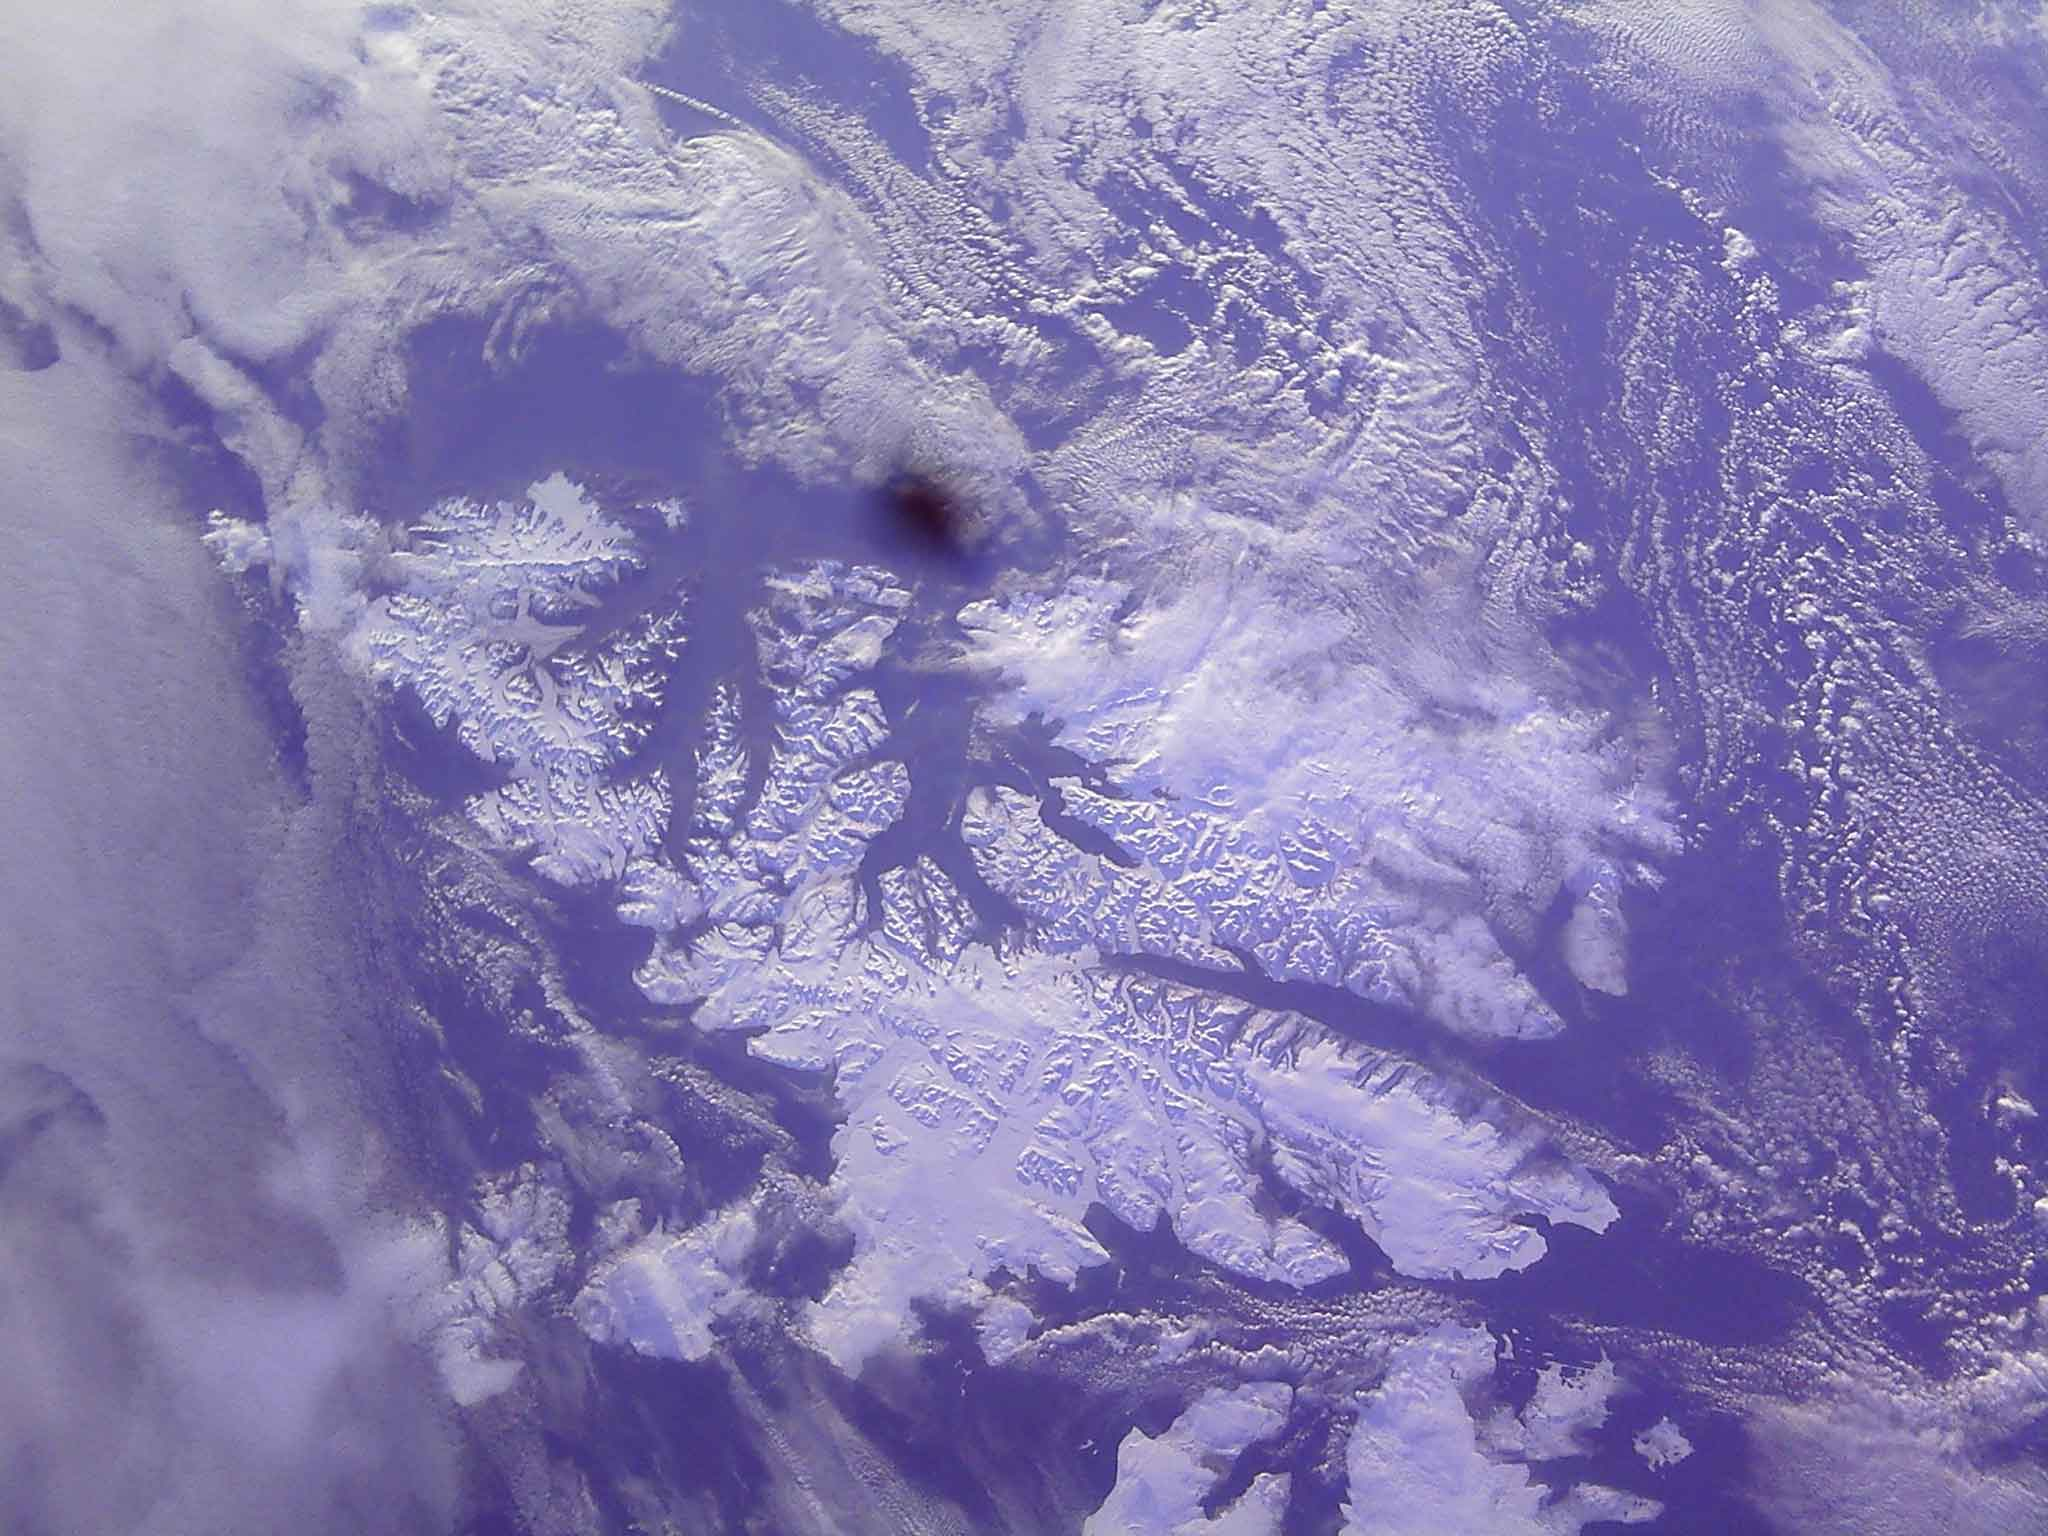 The photo, taken just hours after the launch, shows Svalbard, the Norwegian archipelago located between Norway and the North Pole.